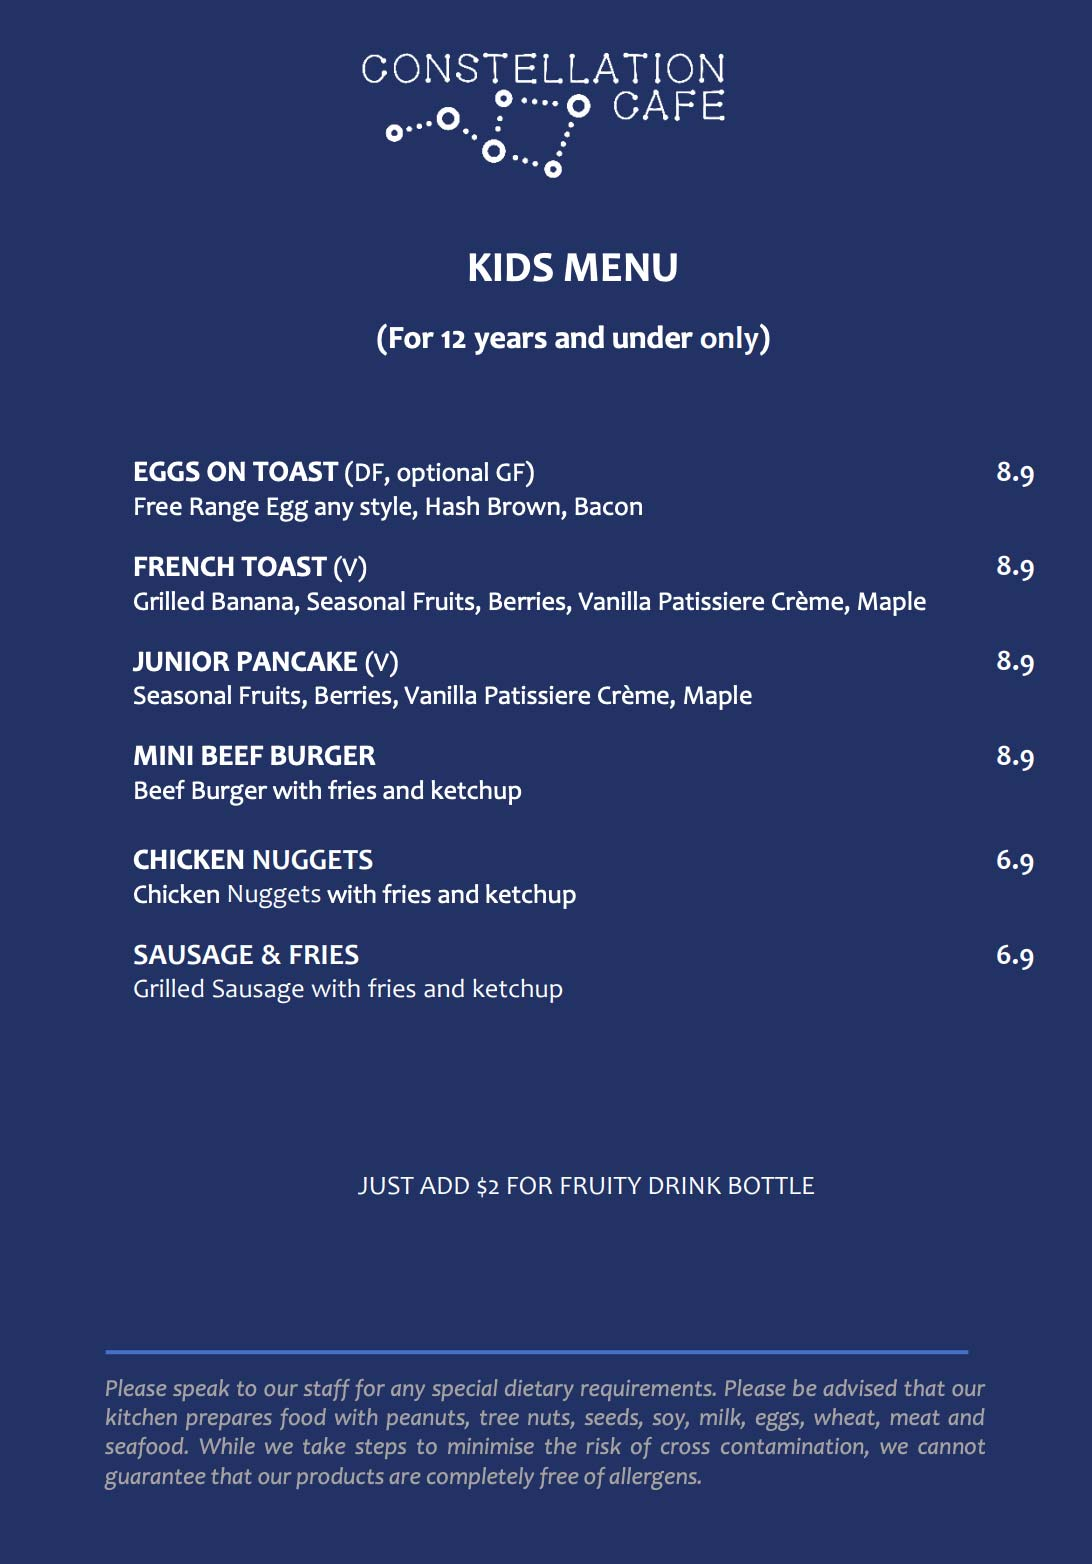 Constellation Cafe Kids menu